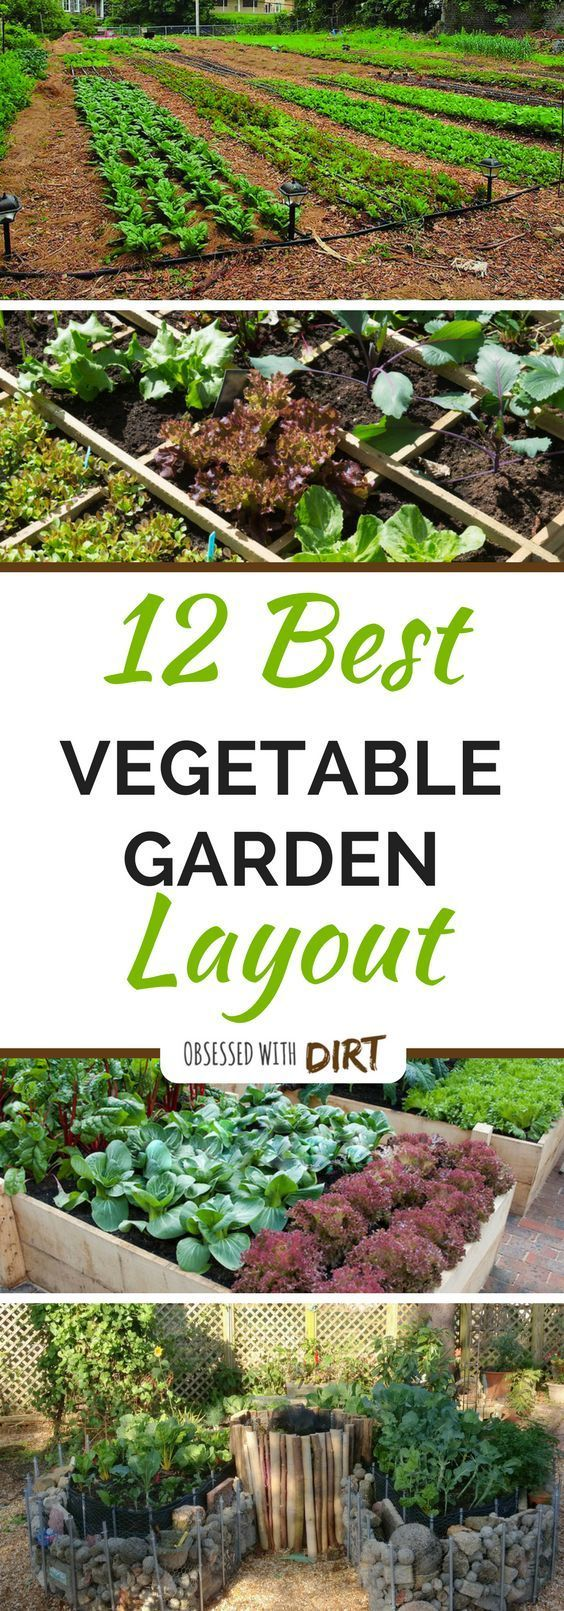 Food garden layout images galleries for Vegetable garden layout